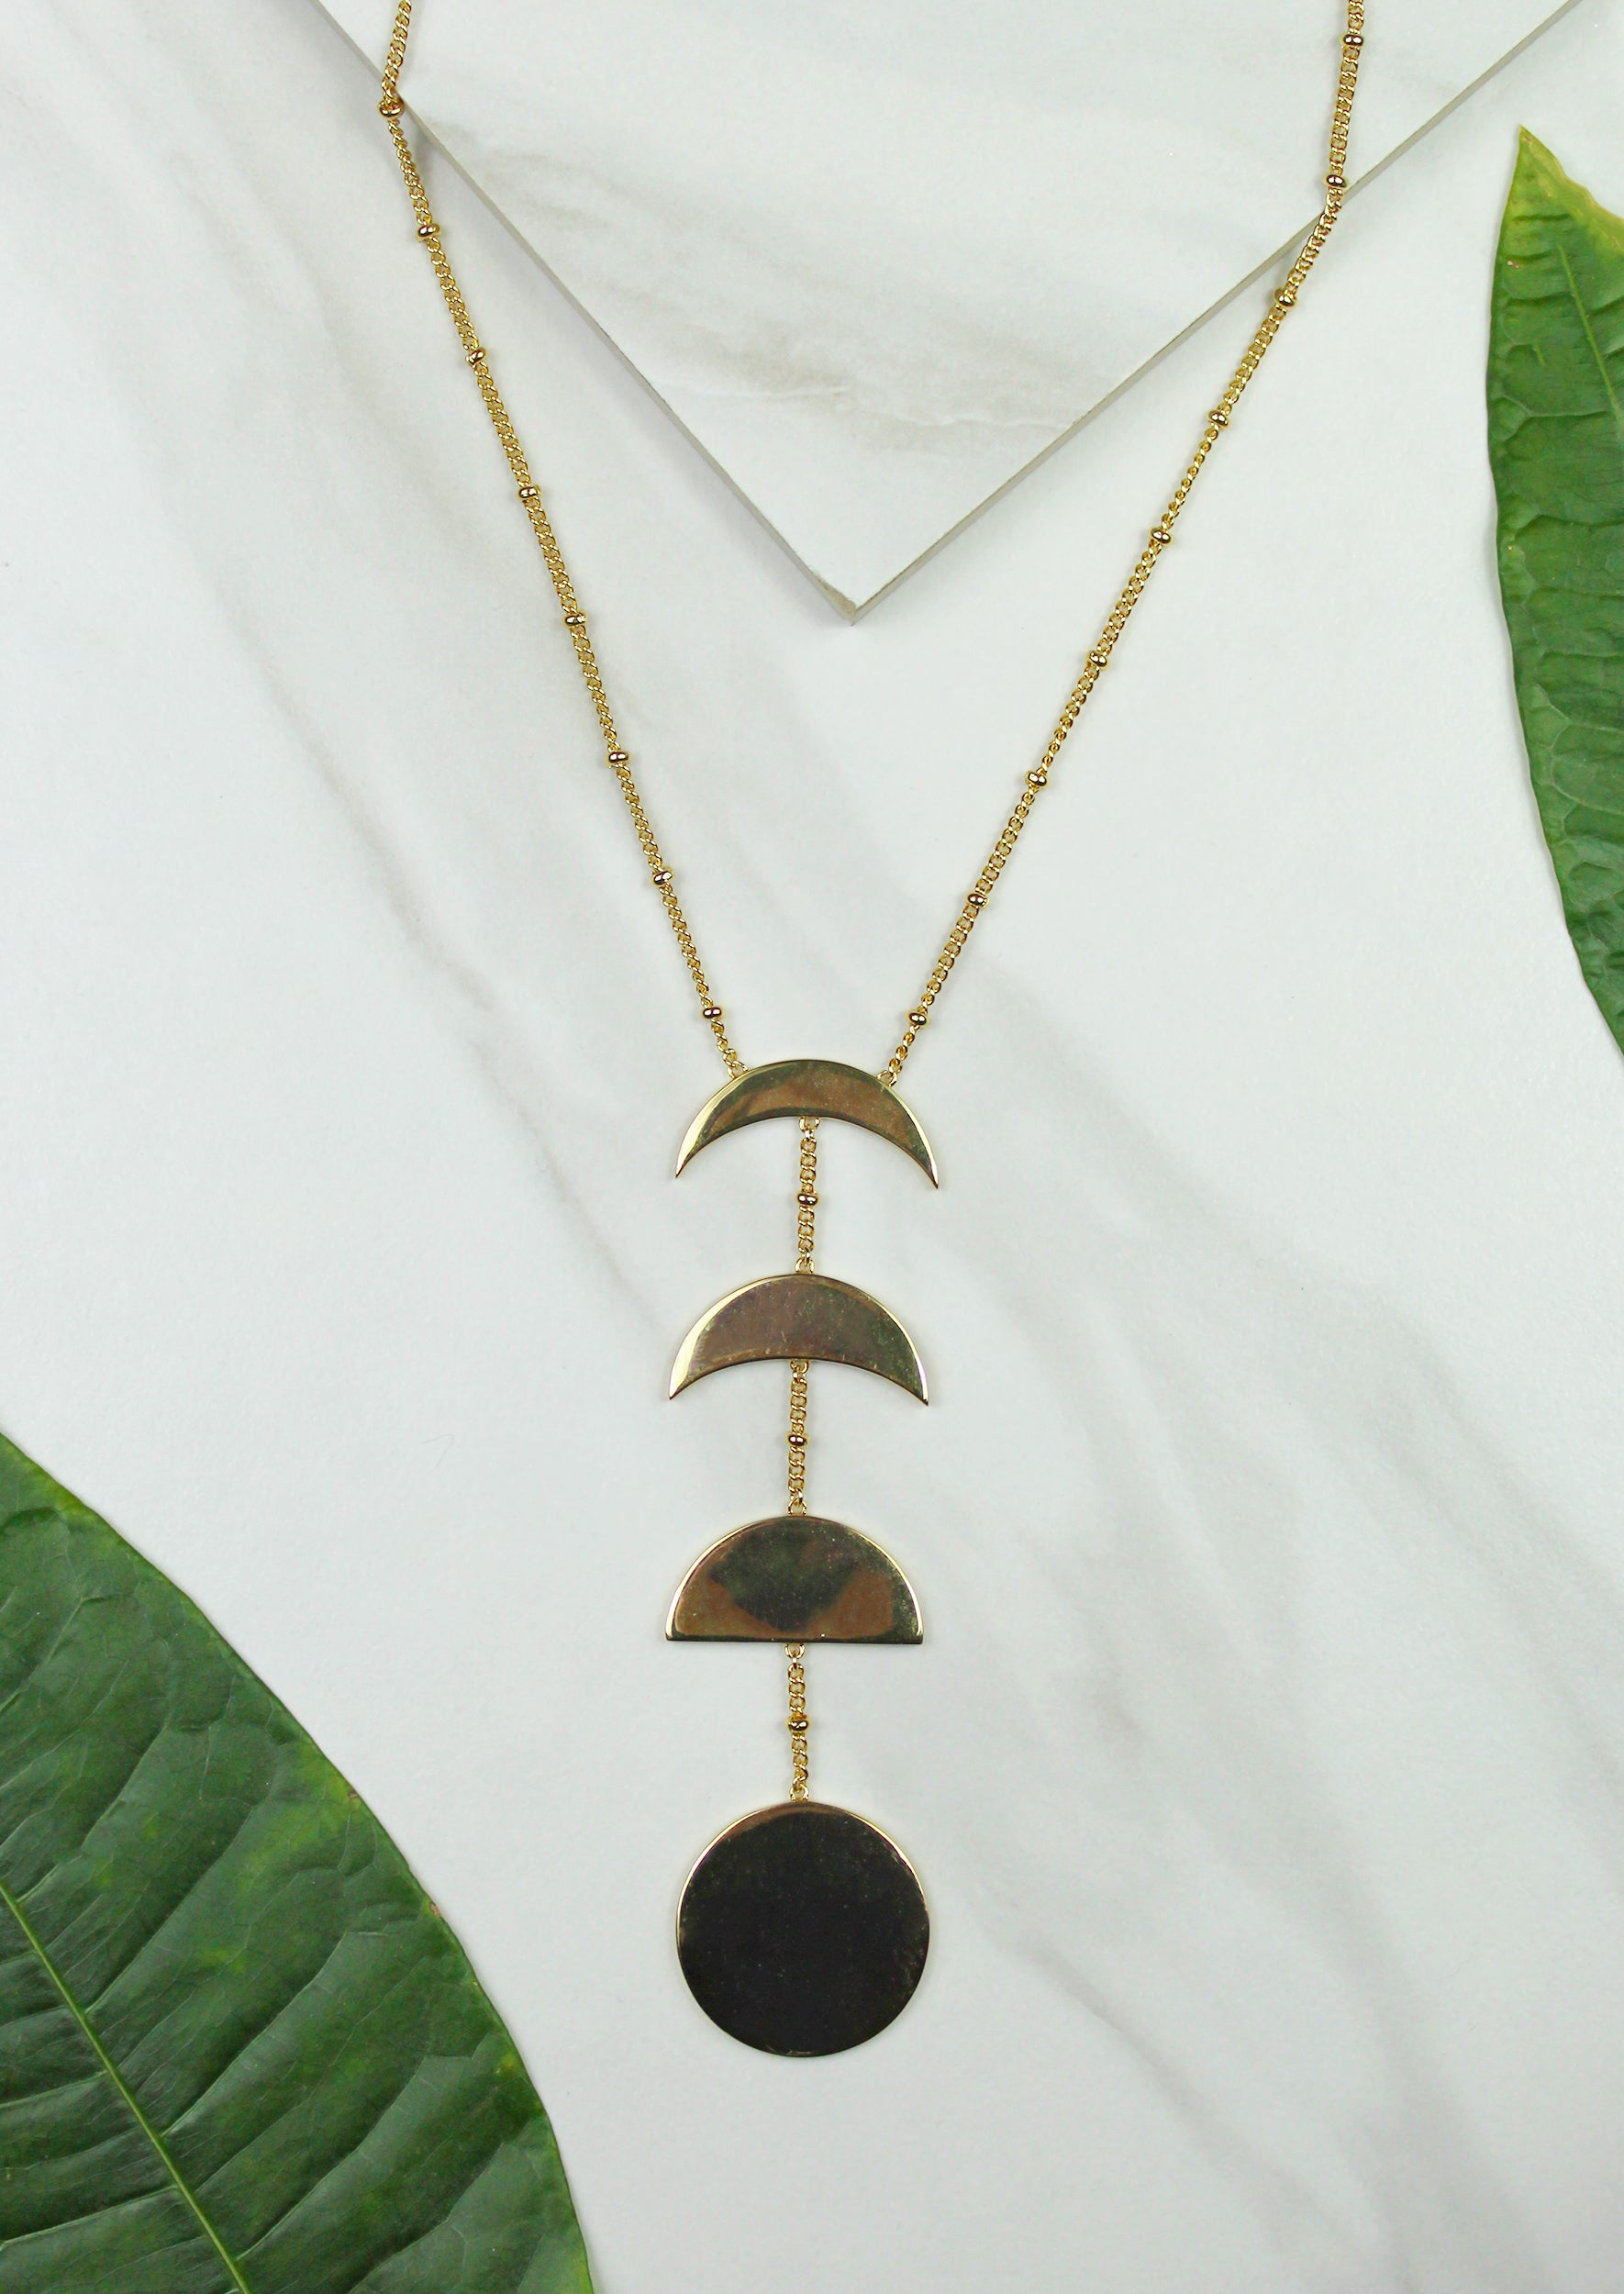 Moon Phase Necklace - Jules Smith - 14K Gold Plated - Boho Jewelry